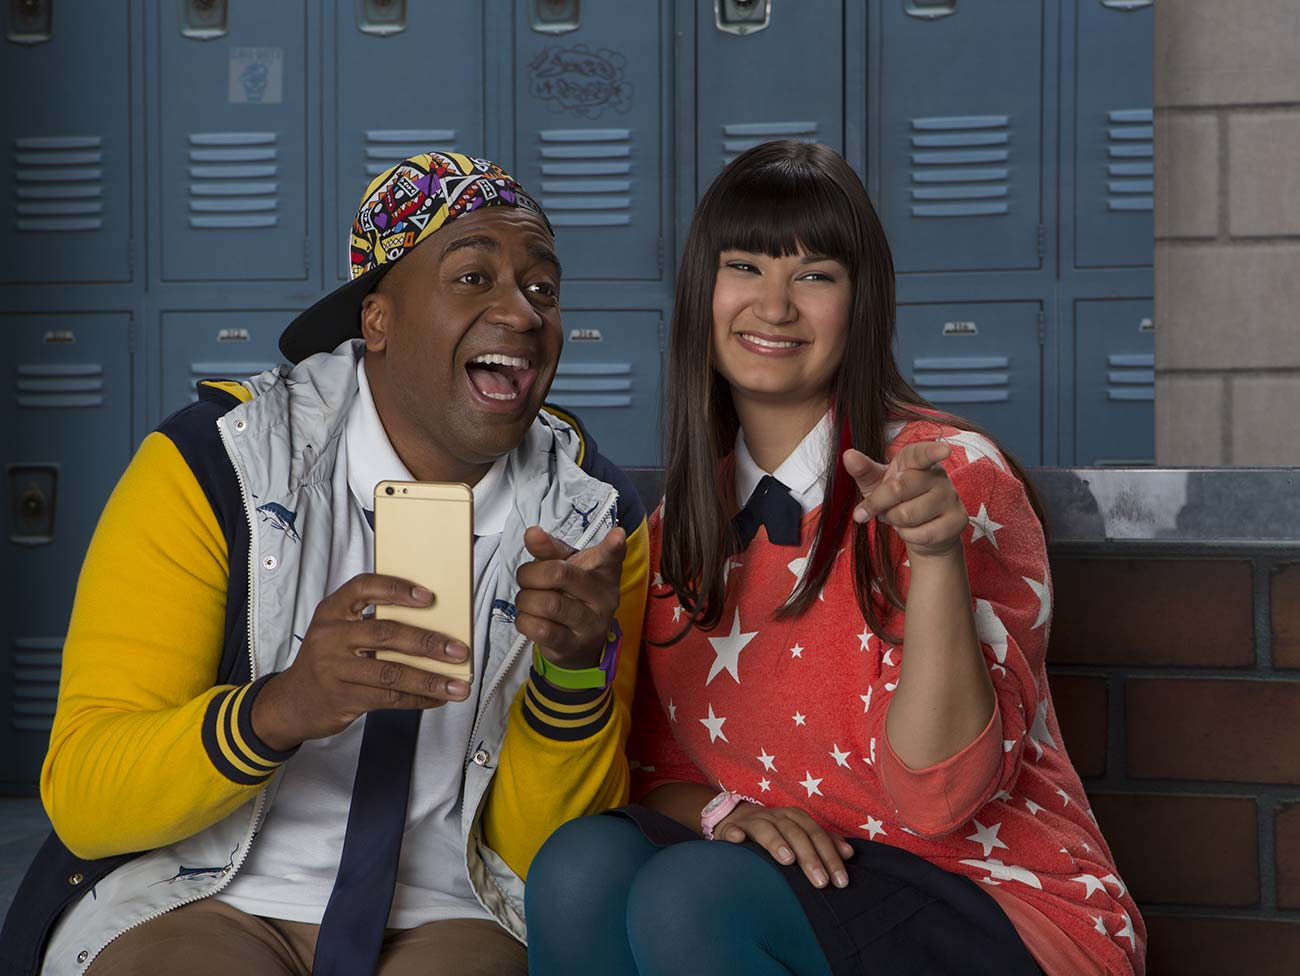 young man and woman sitting in high school hallway pointing and laughing